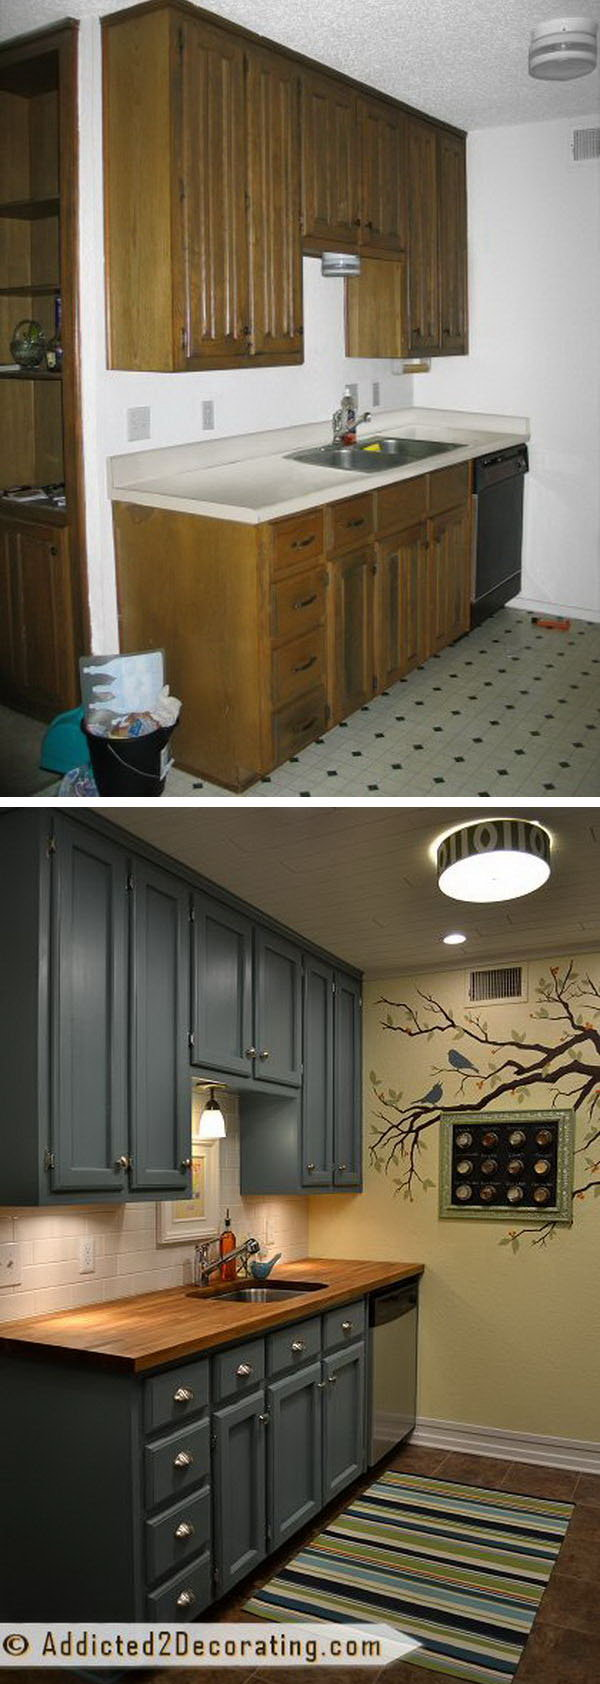 Kitchen rejuvenation before and after: small little kitchen cheap makeover FMDYJSI